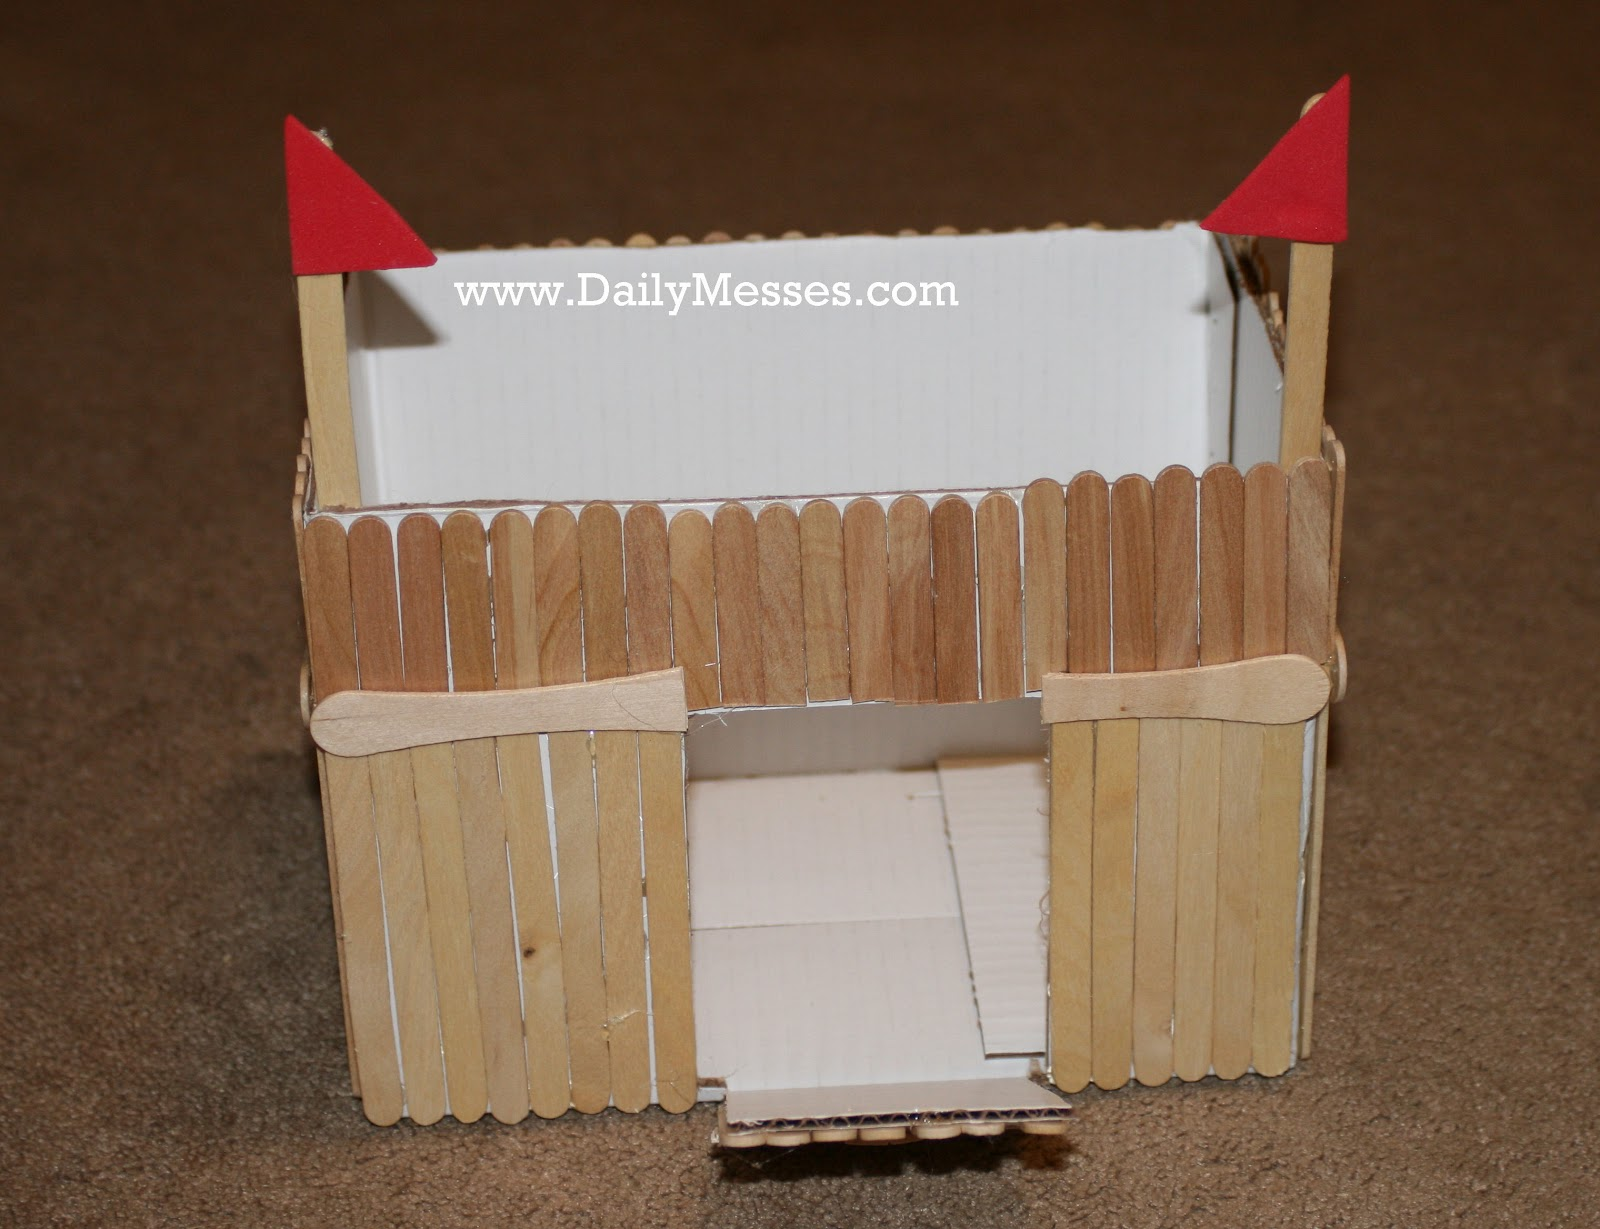 Daily Messes Fun With Popsicle Sticks Homemade Fort And